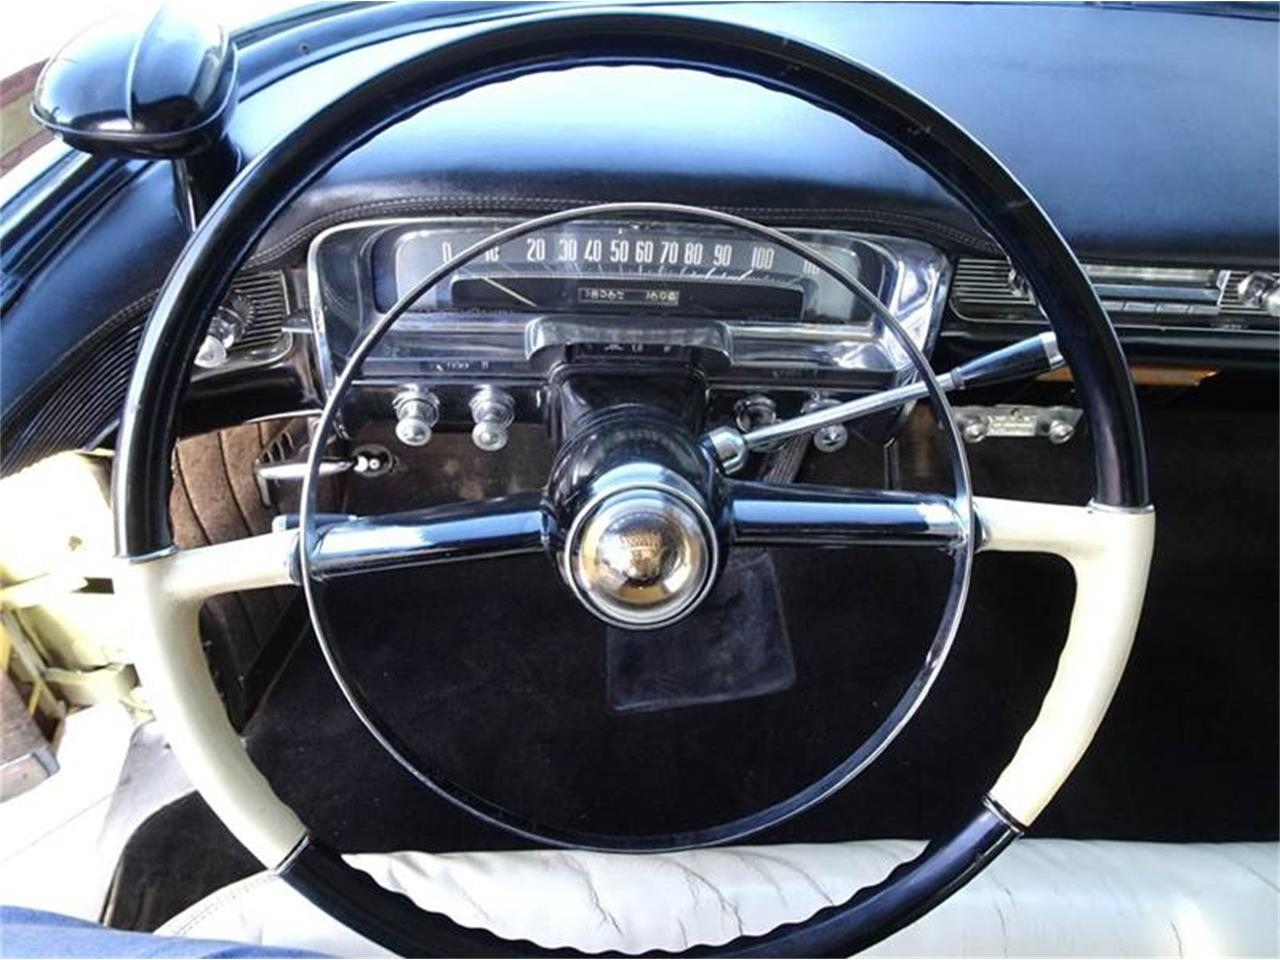 Large Picture of 1954 Cadillac DeVille - $16,795.00 Offered by Great Lakes Classic Cars - M8ZD